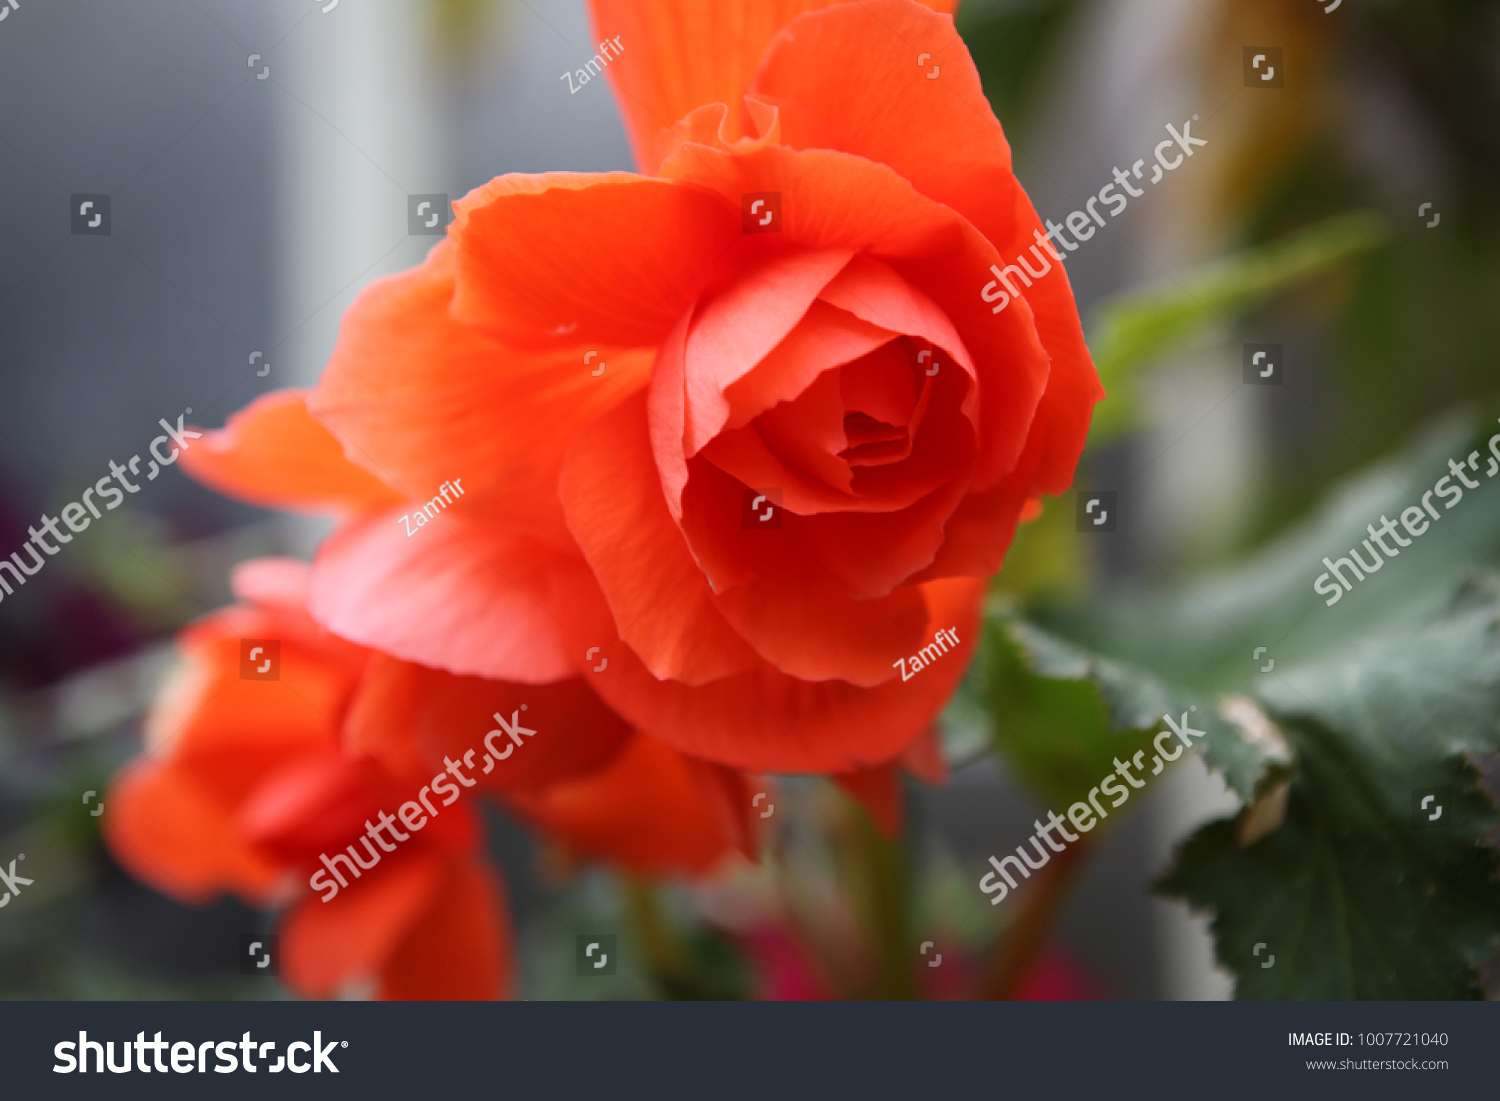 Begonia Is A Genus Of Perennial Flowering Plants In The Family